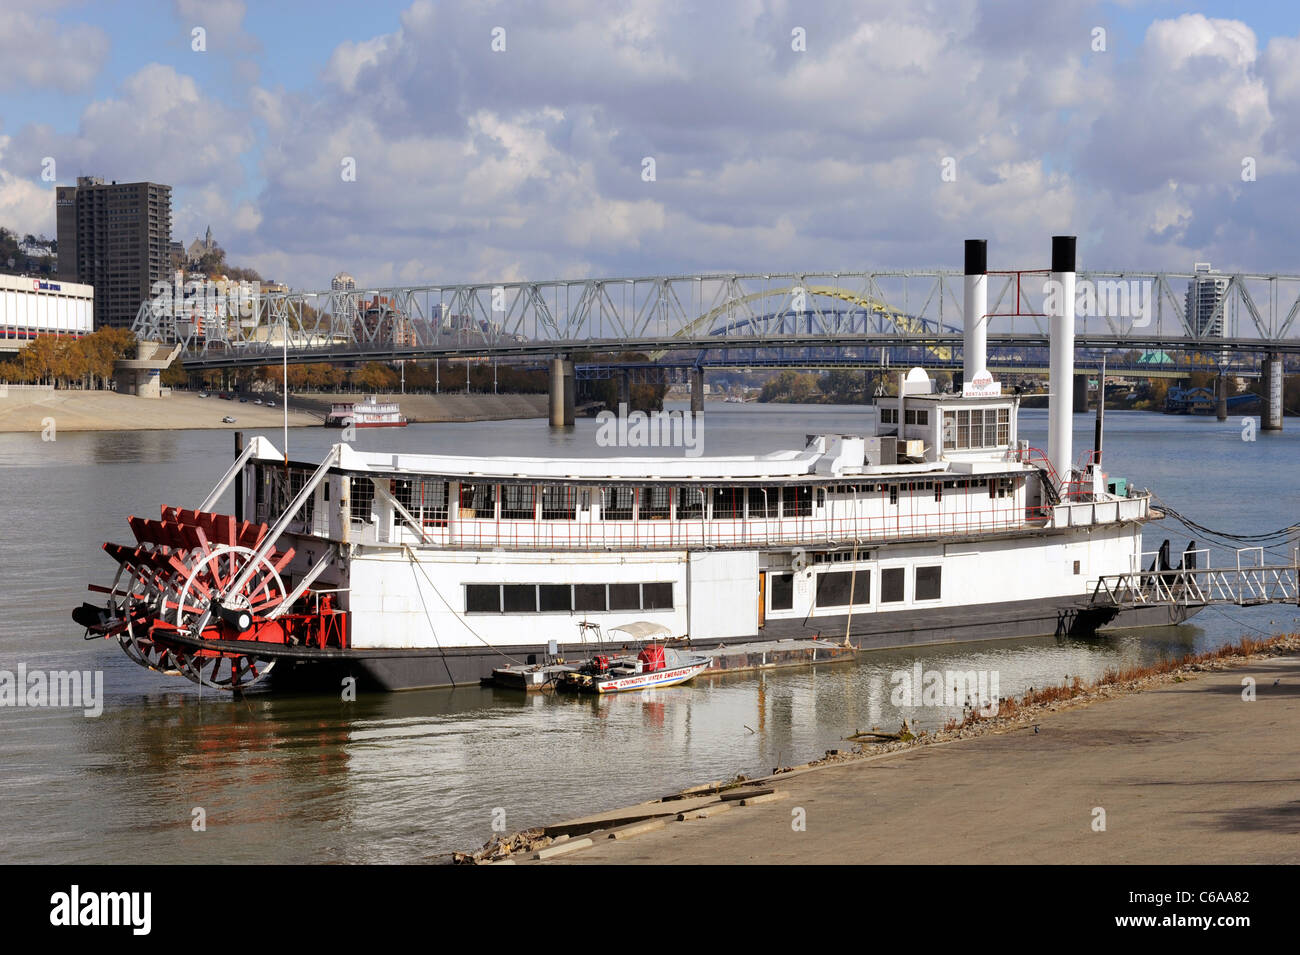 Mike Fink Steamboat Restaurant On The Ohio River At Covington Stock